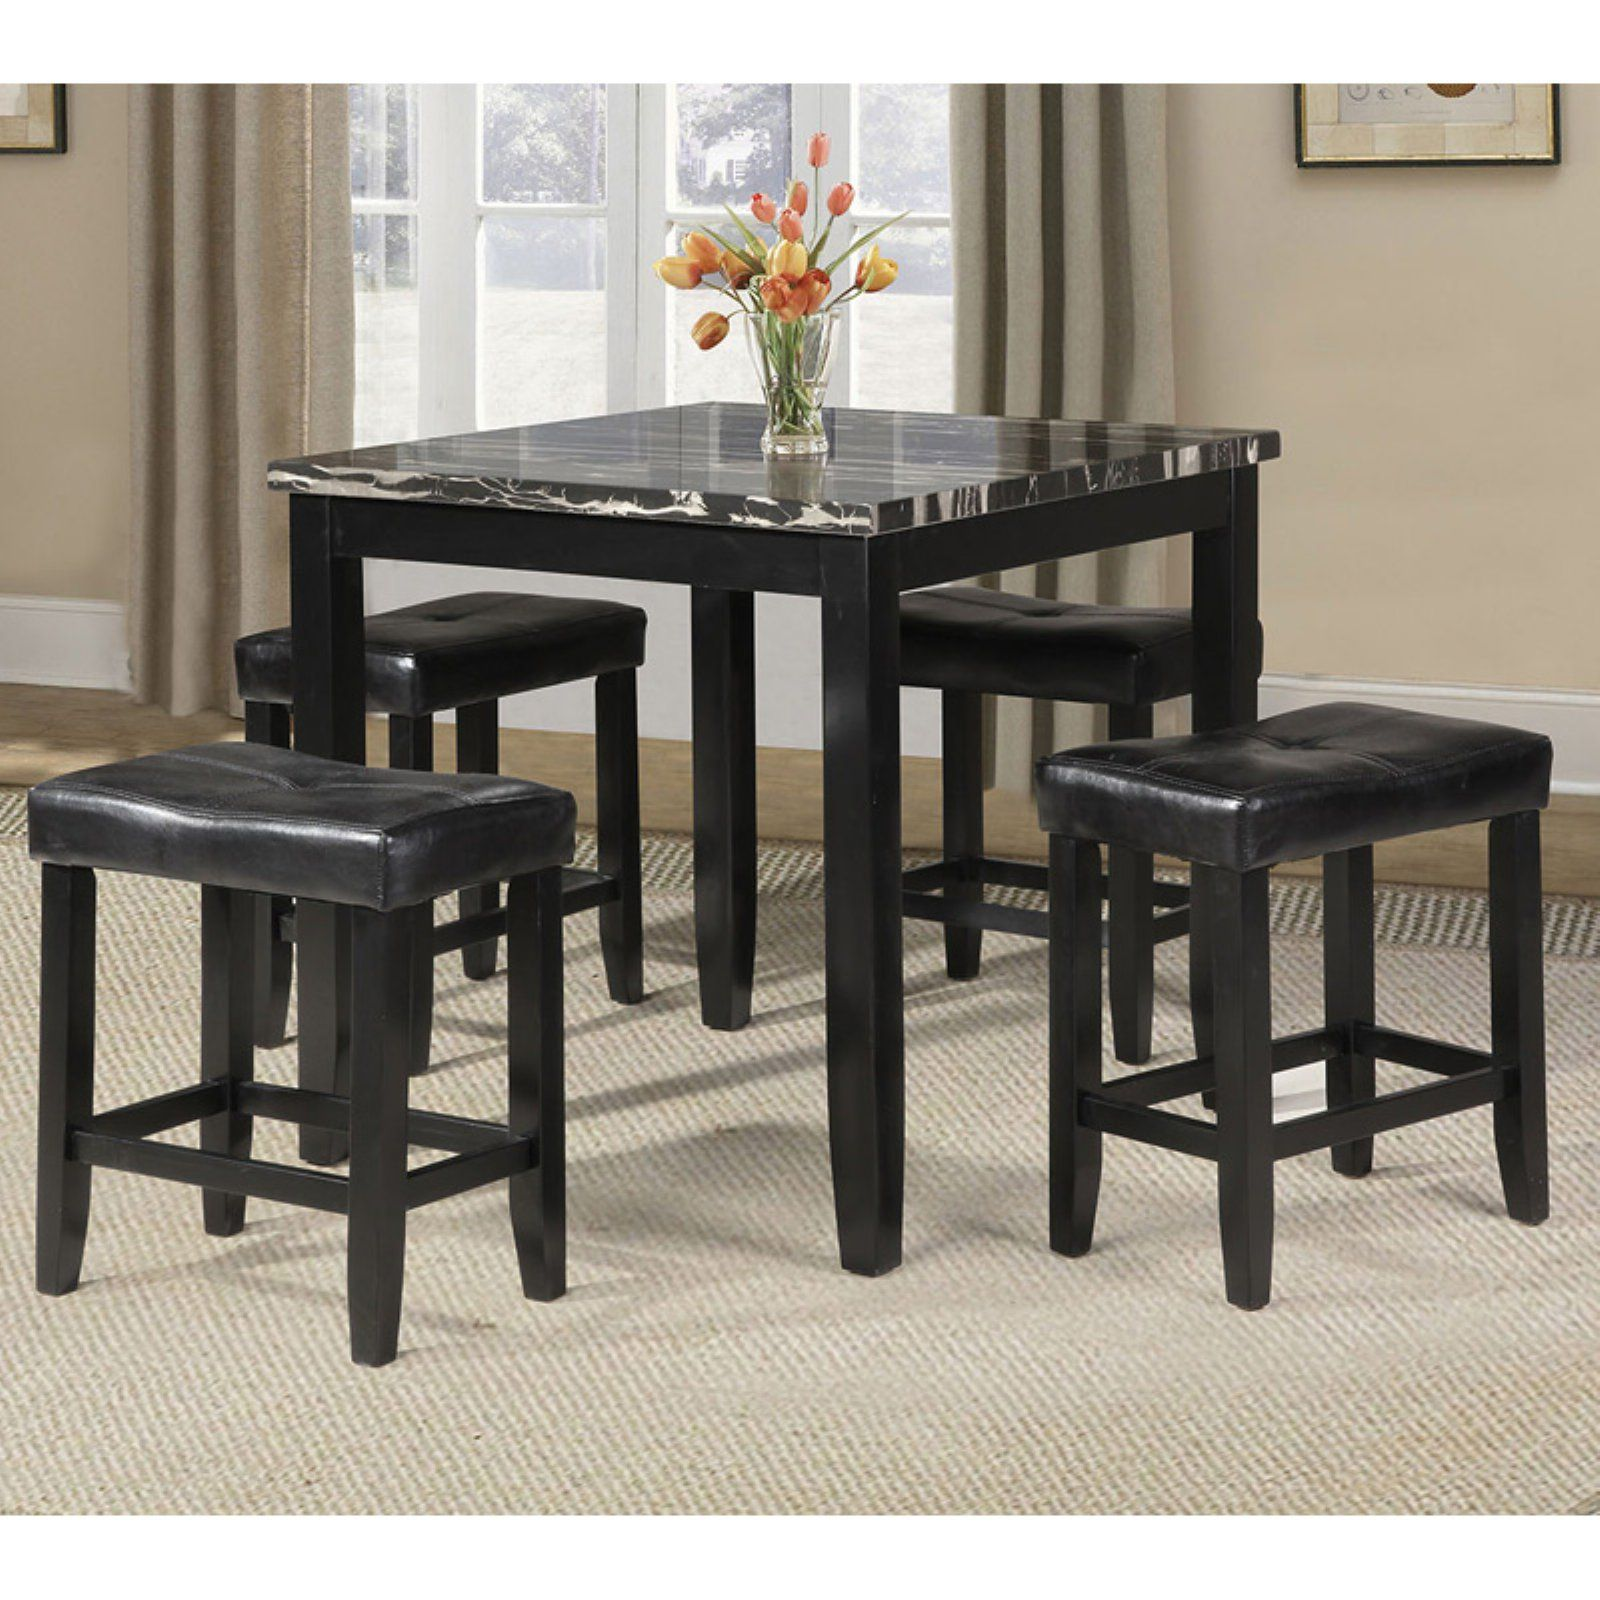 Acme Furniture Blythe 5 Piece Counter Height Faux Marble Dining